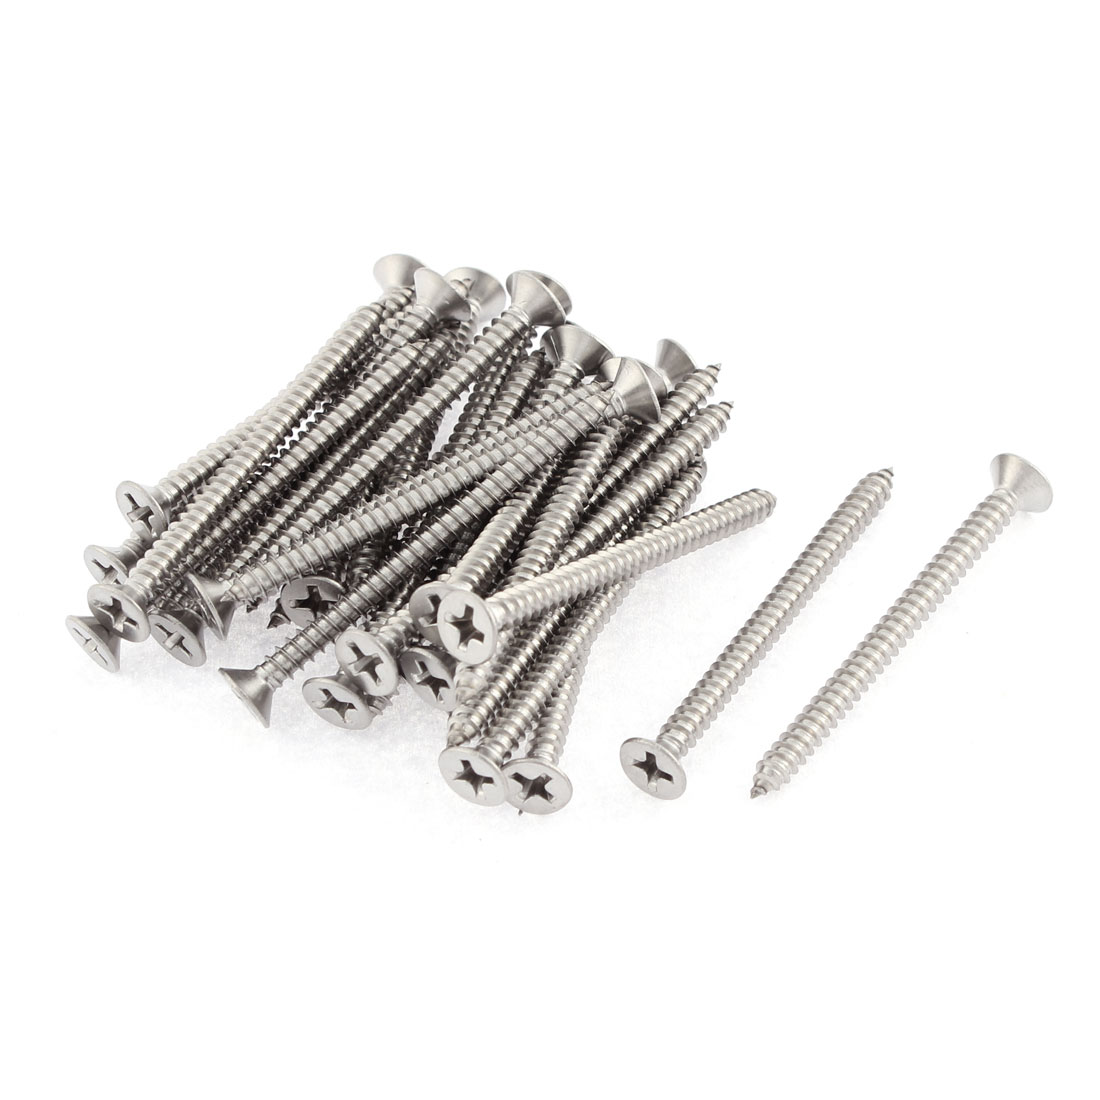 30 Pcs 3.5mmx45mm Stainless Steel Phillips Flat Head Sheet Self Tapping Screws